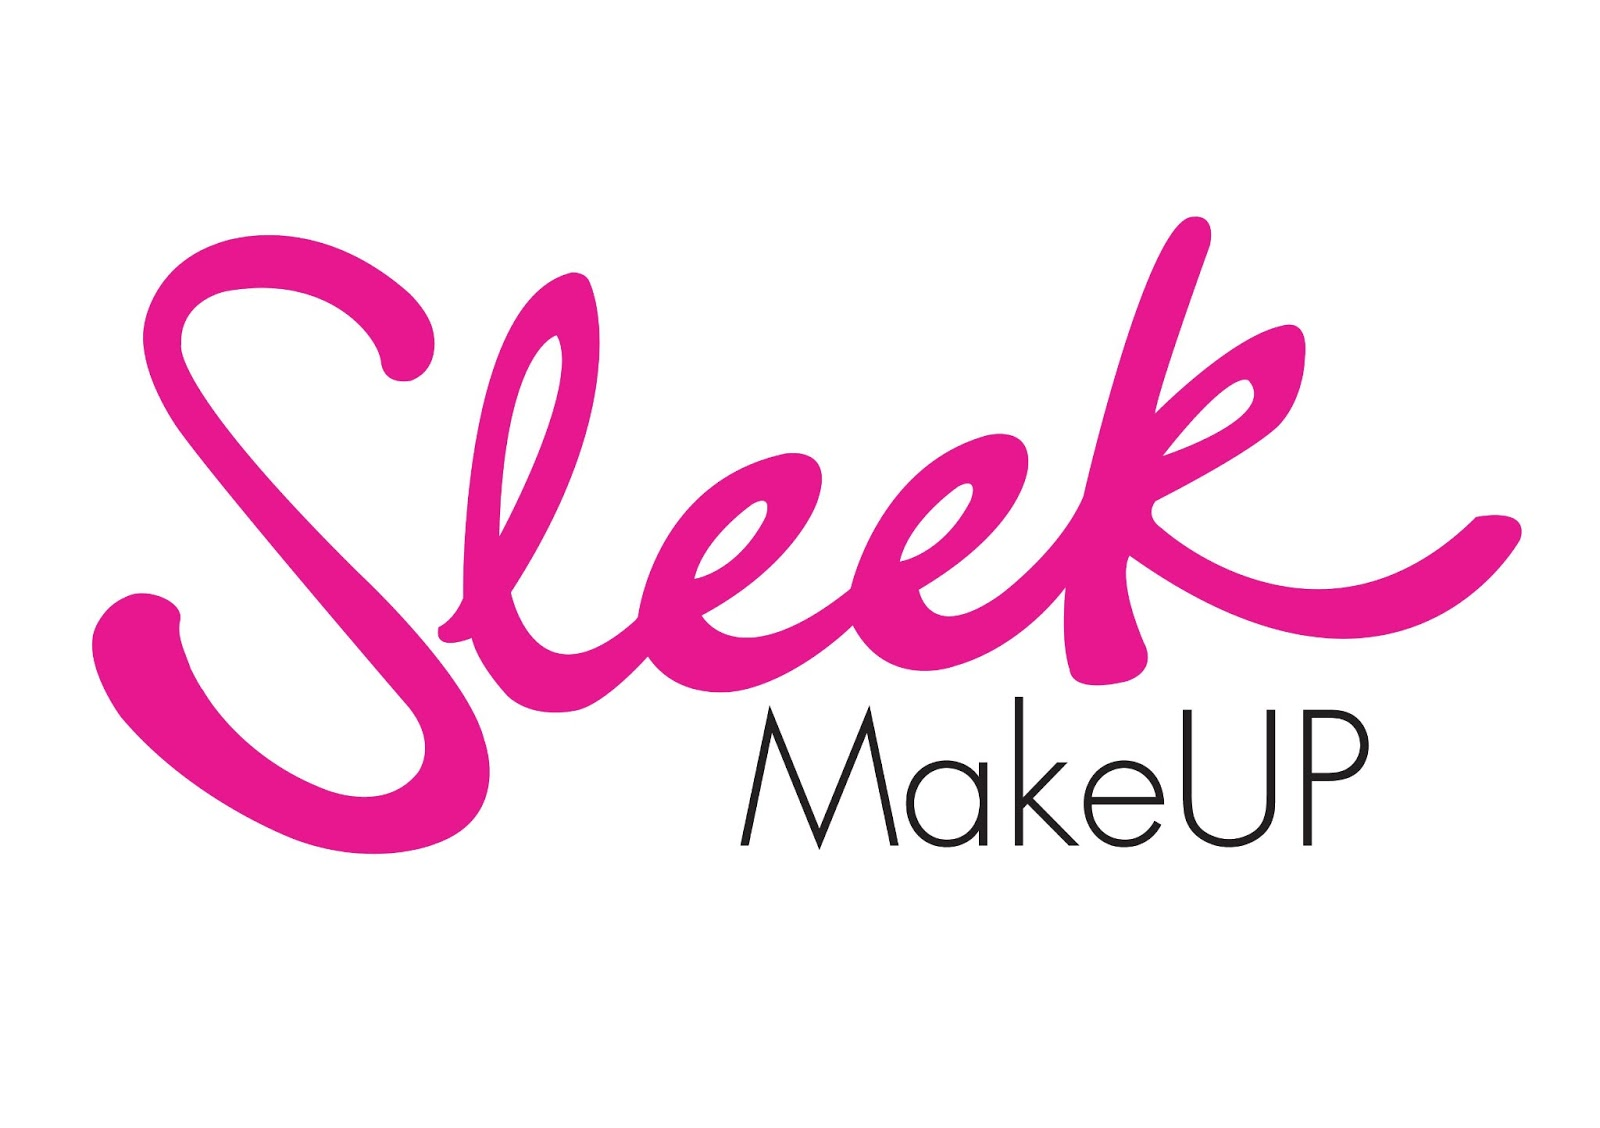 cruelty free information is sleek makeup tested on animals lipstick clipart coloring book image lipstick clipart png